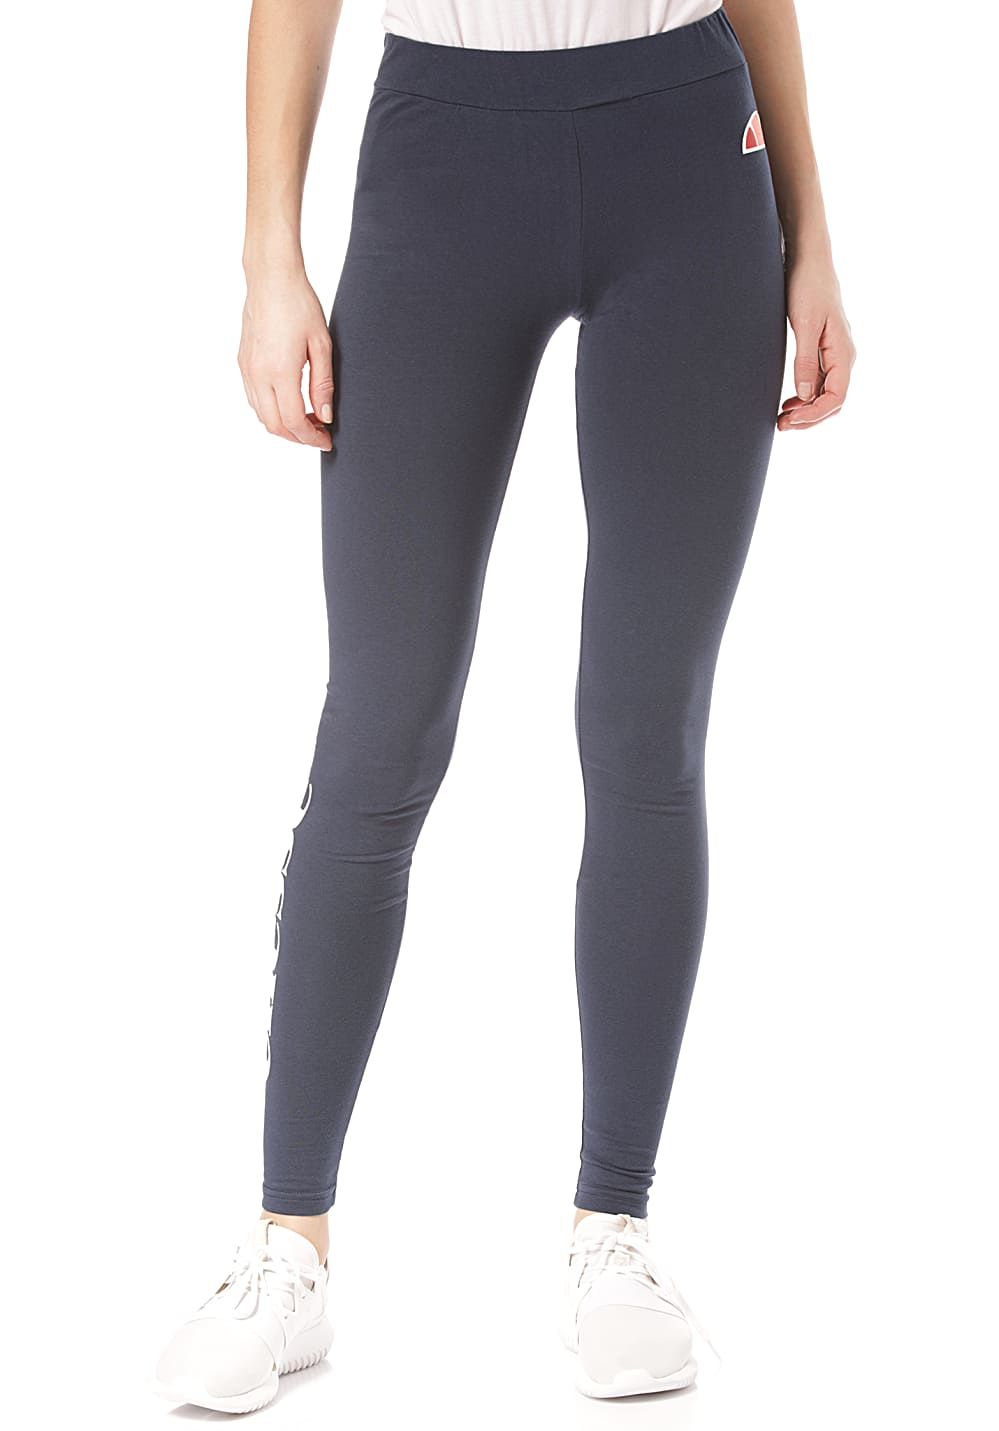 Hosen für Frauen - ELLESSE Solos 2 Leggings für Damen Blau  - Onlineshop Planet Sports